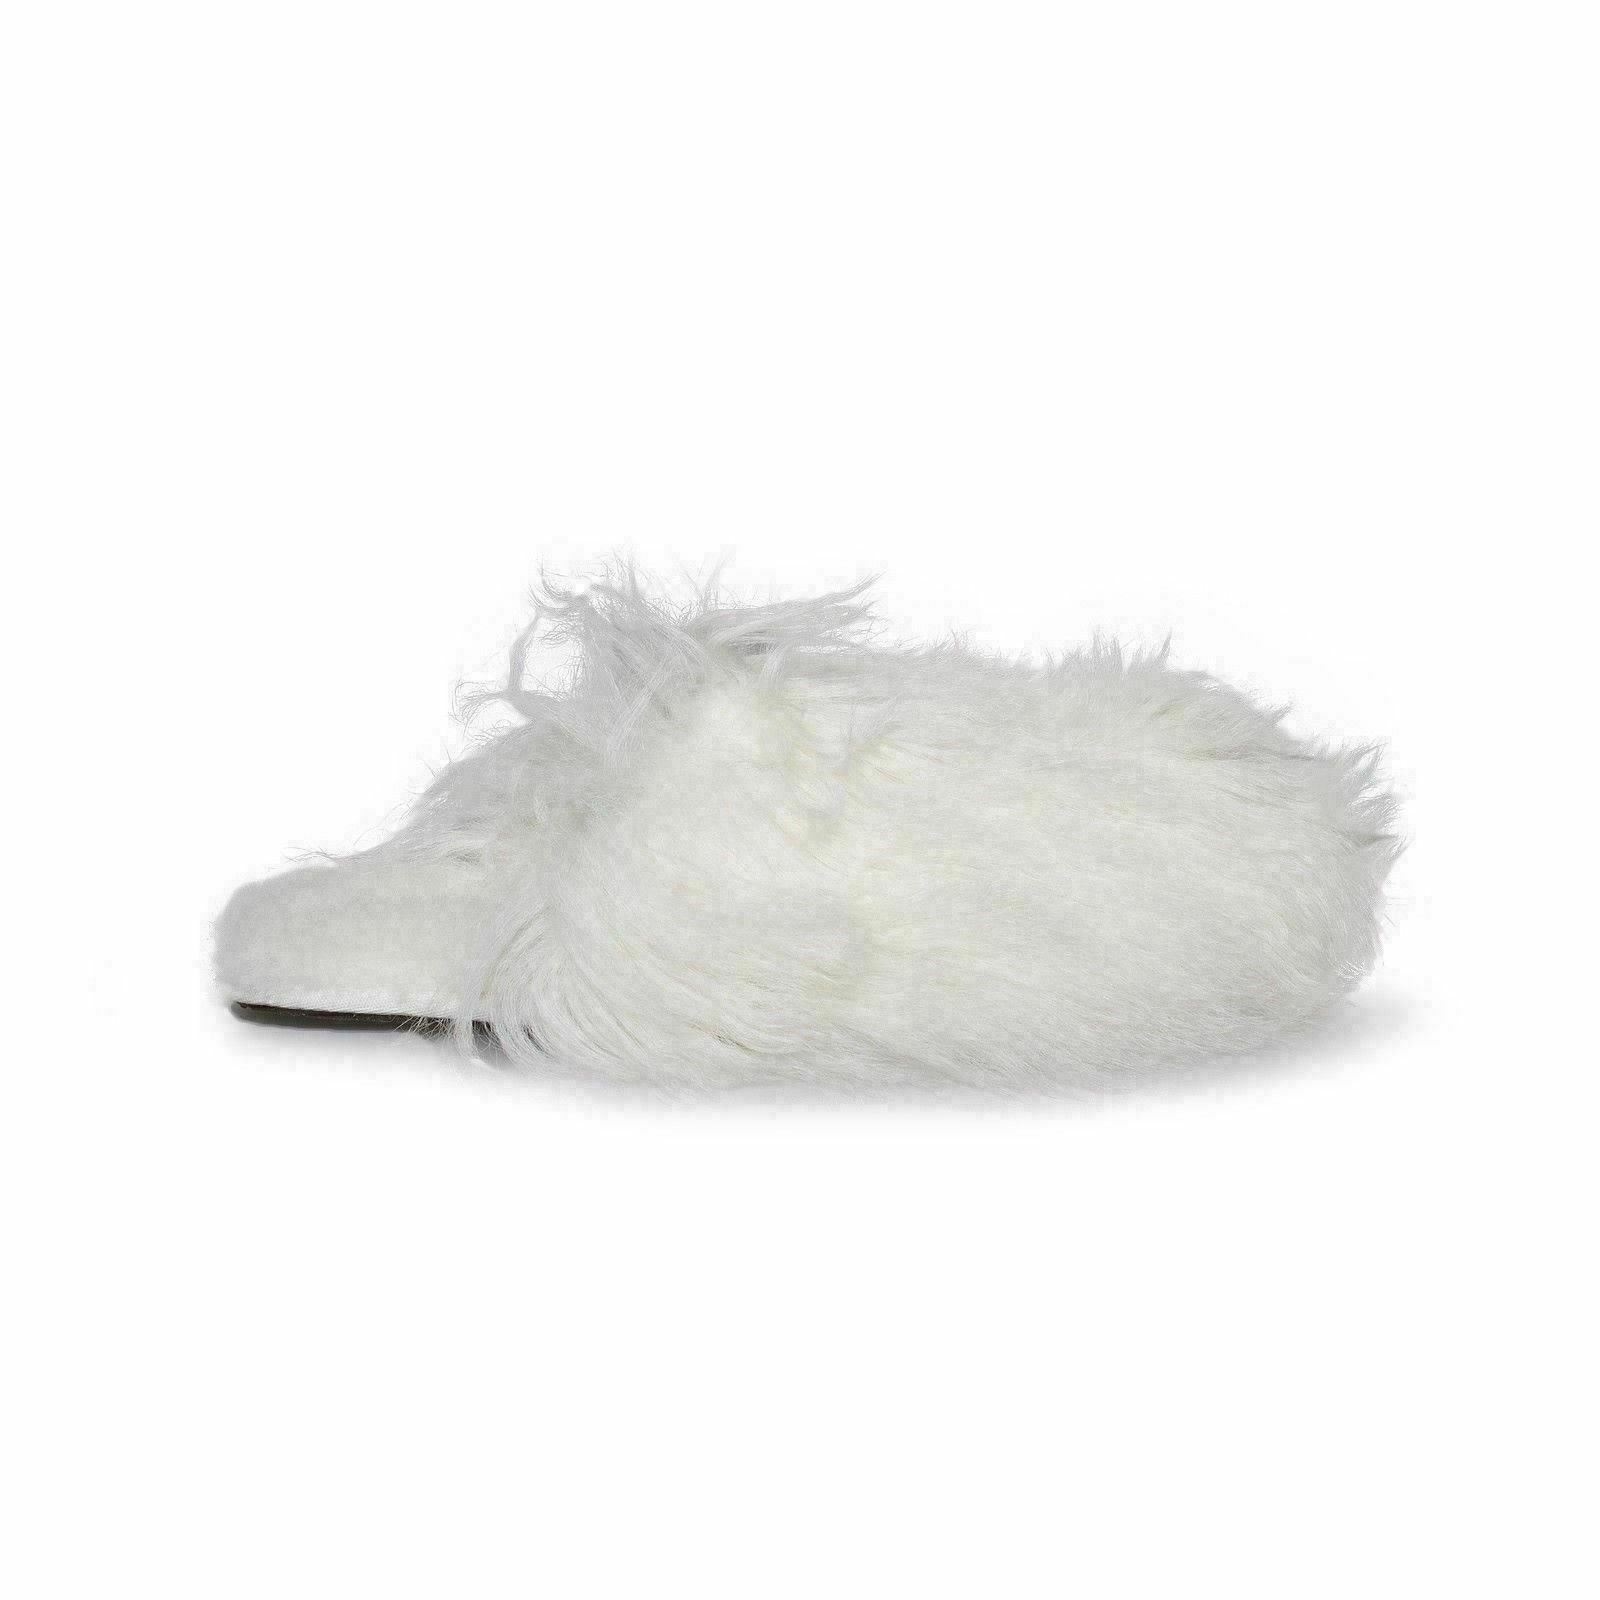 304cac847f6 UGG Womens Fluff Momma Mongolian Clogs White Size 10 Scuff Fur Slippers  1019726